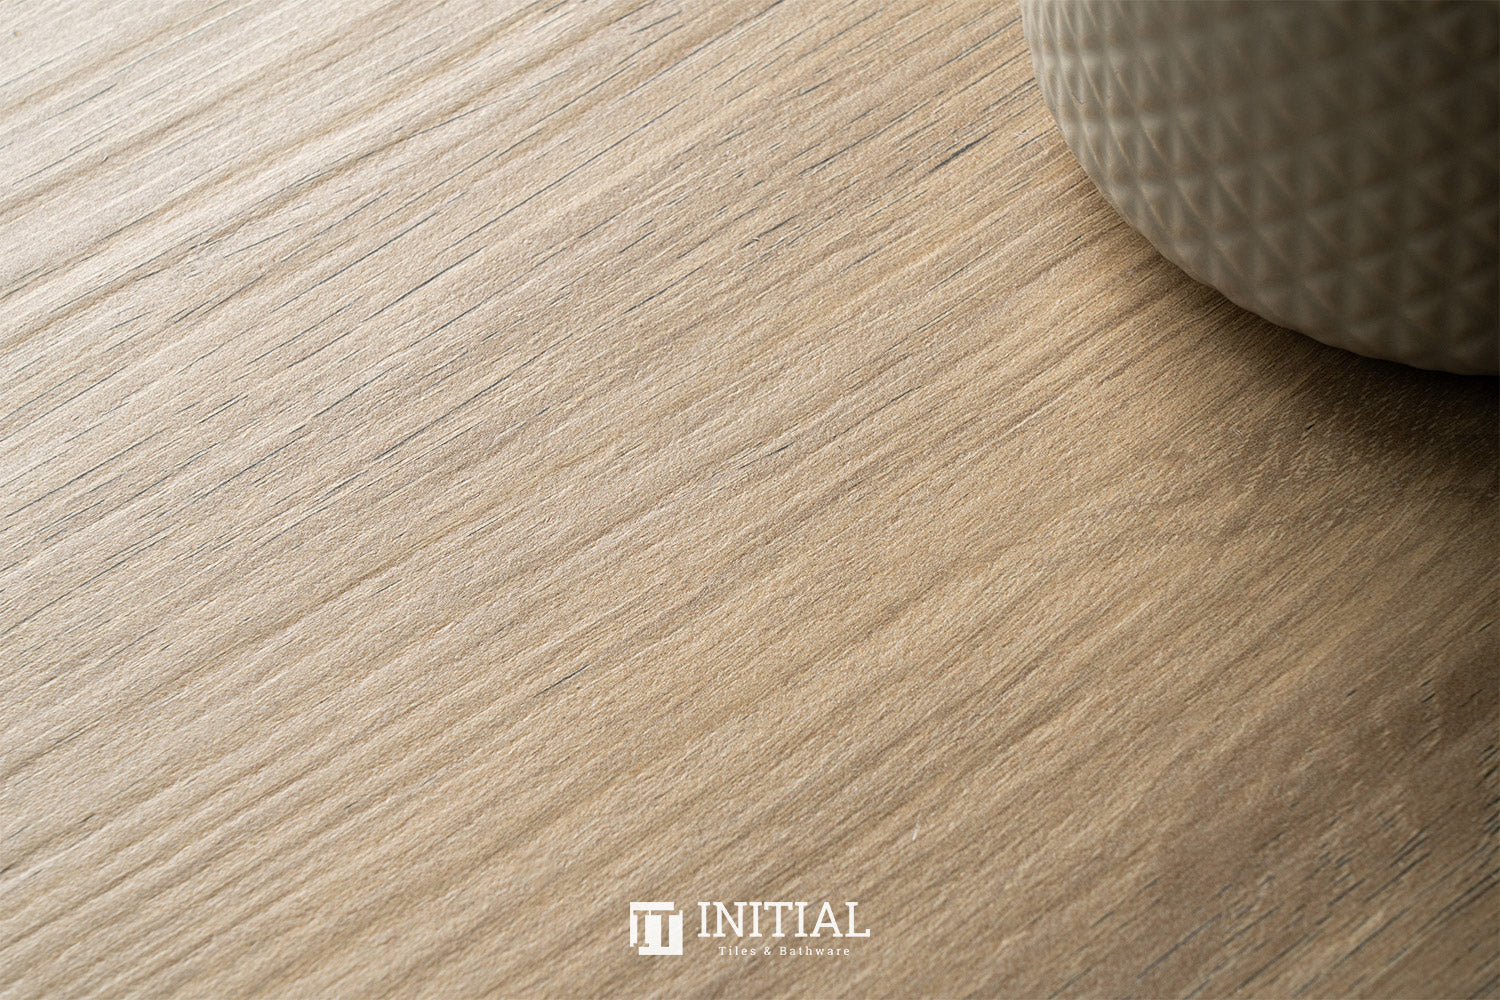 Timber Tile Atana Natural Beige Porcelain Matt 200X1200